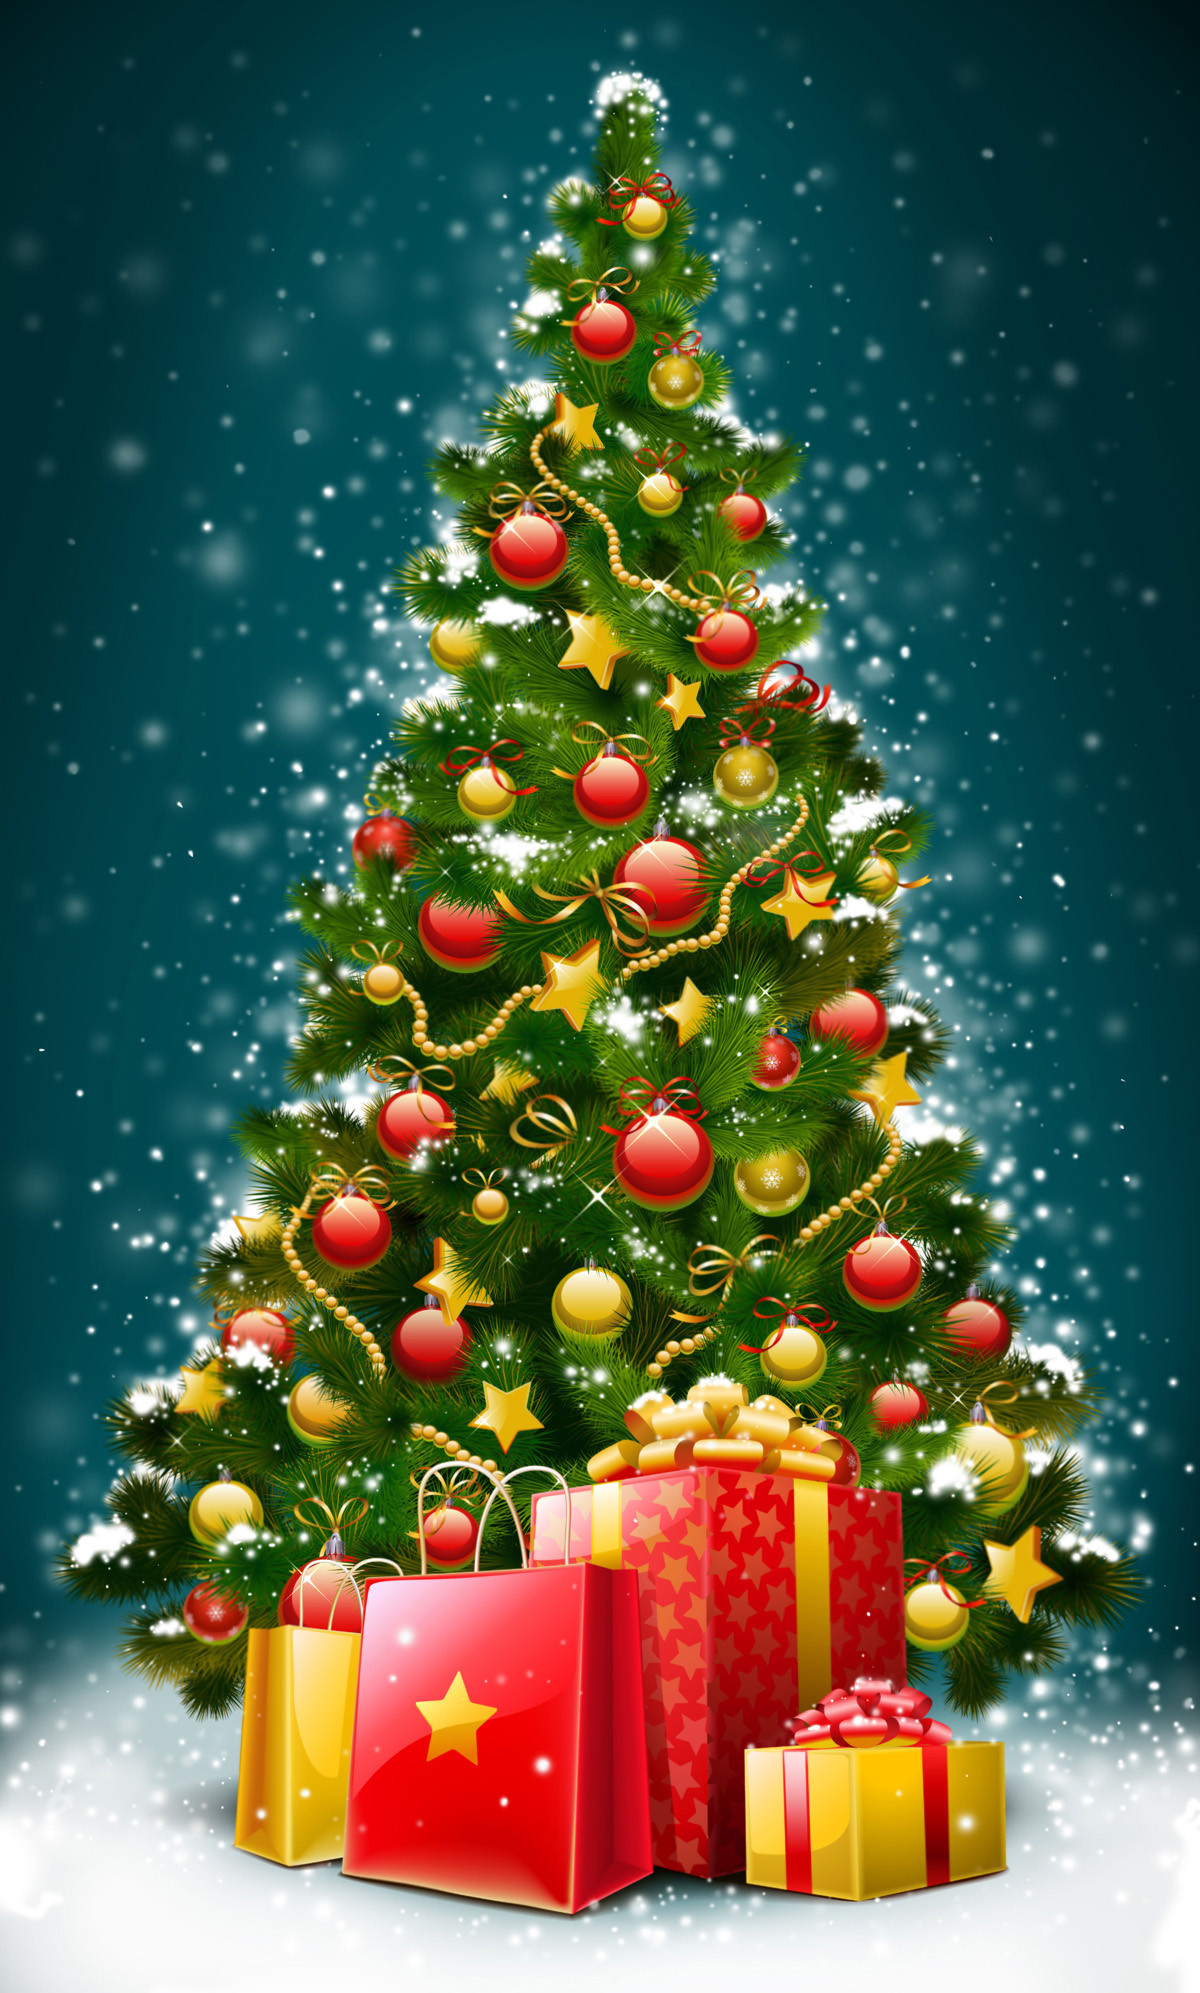 28189-beautiful-christmas-tree